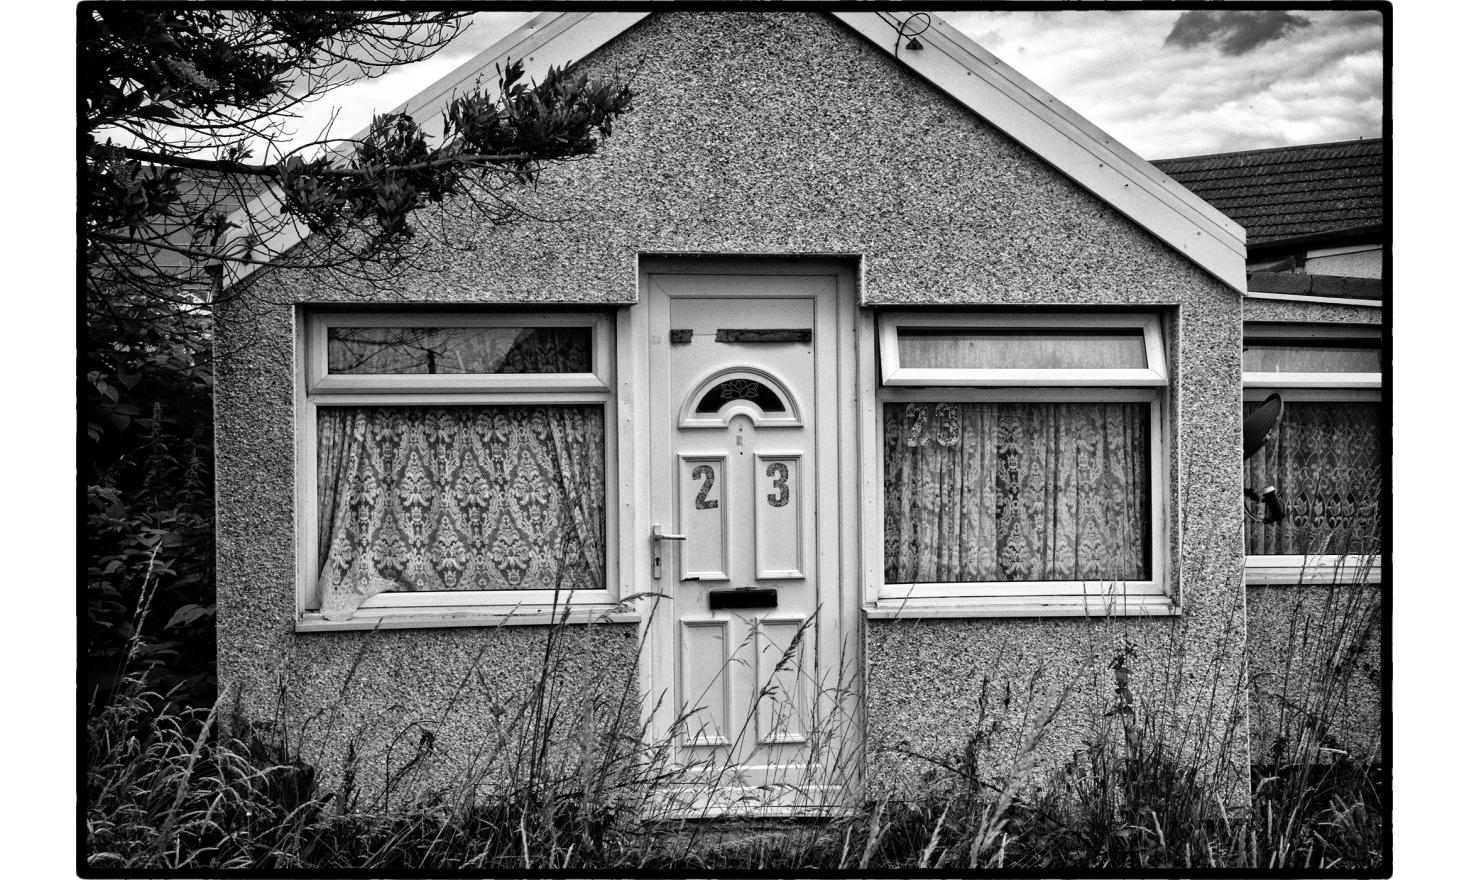 The suburb town of Jaywick is presented by government figures as the poorest town in the UK. Clacton on sea, England. July 2016